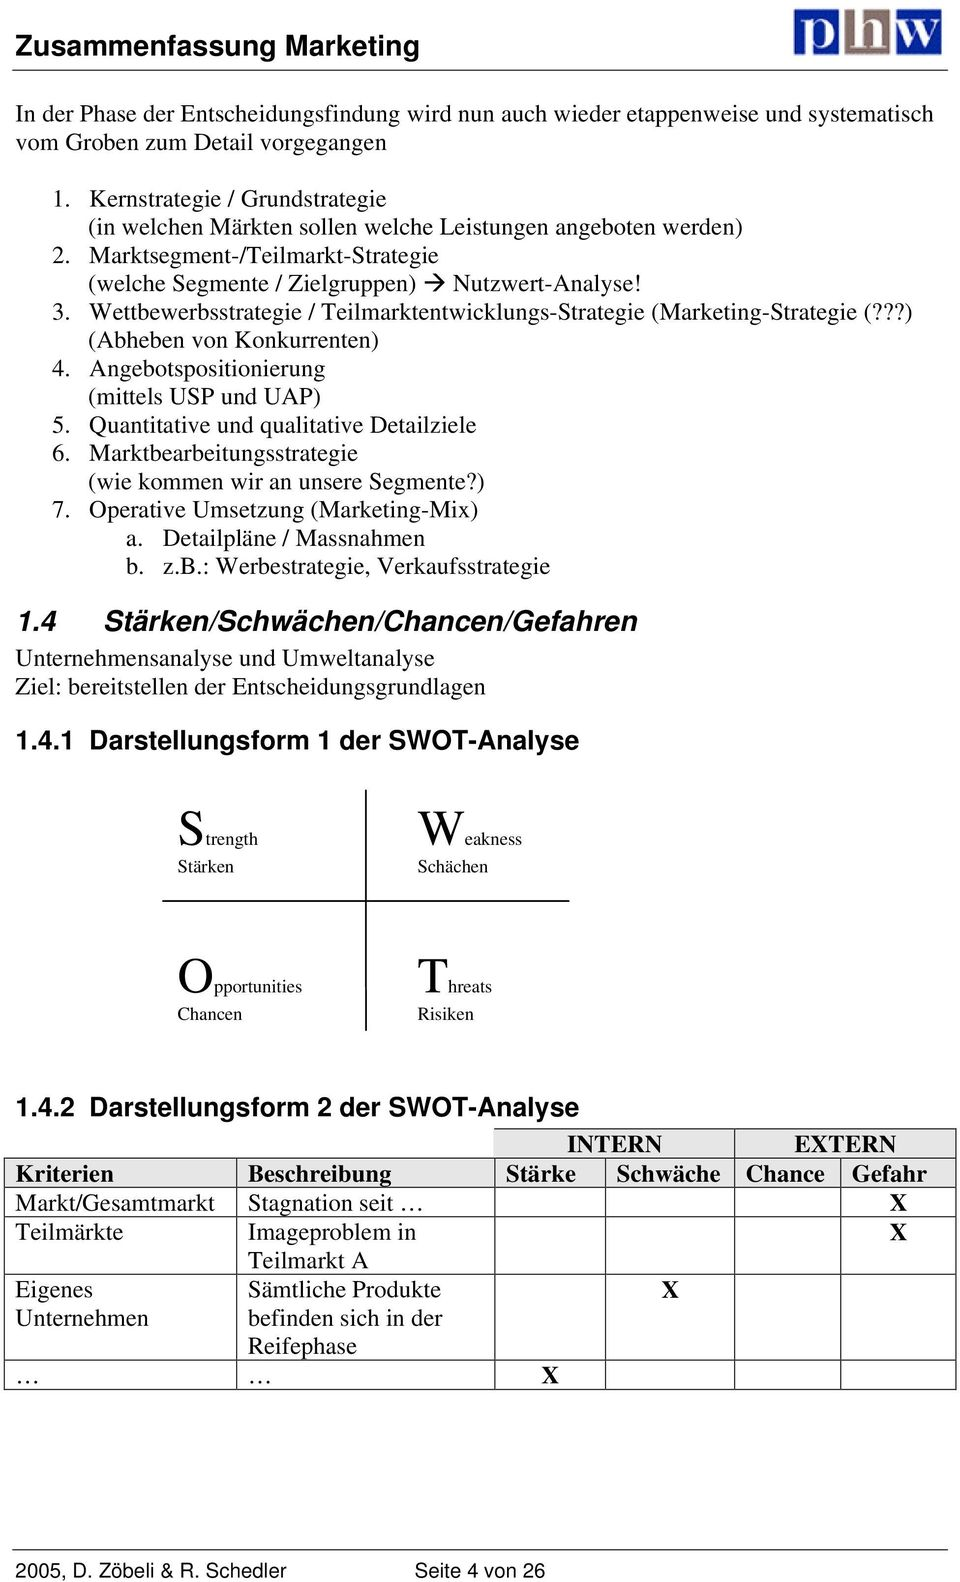 Charmant Konkurrenz Swot Analyse Vorlage Galerie - Entry Level ...